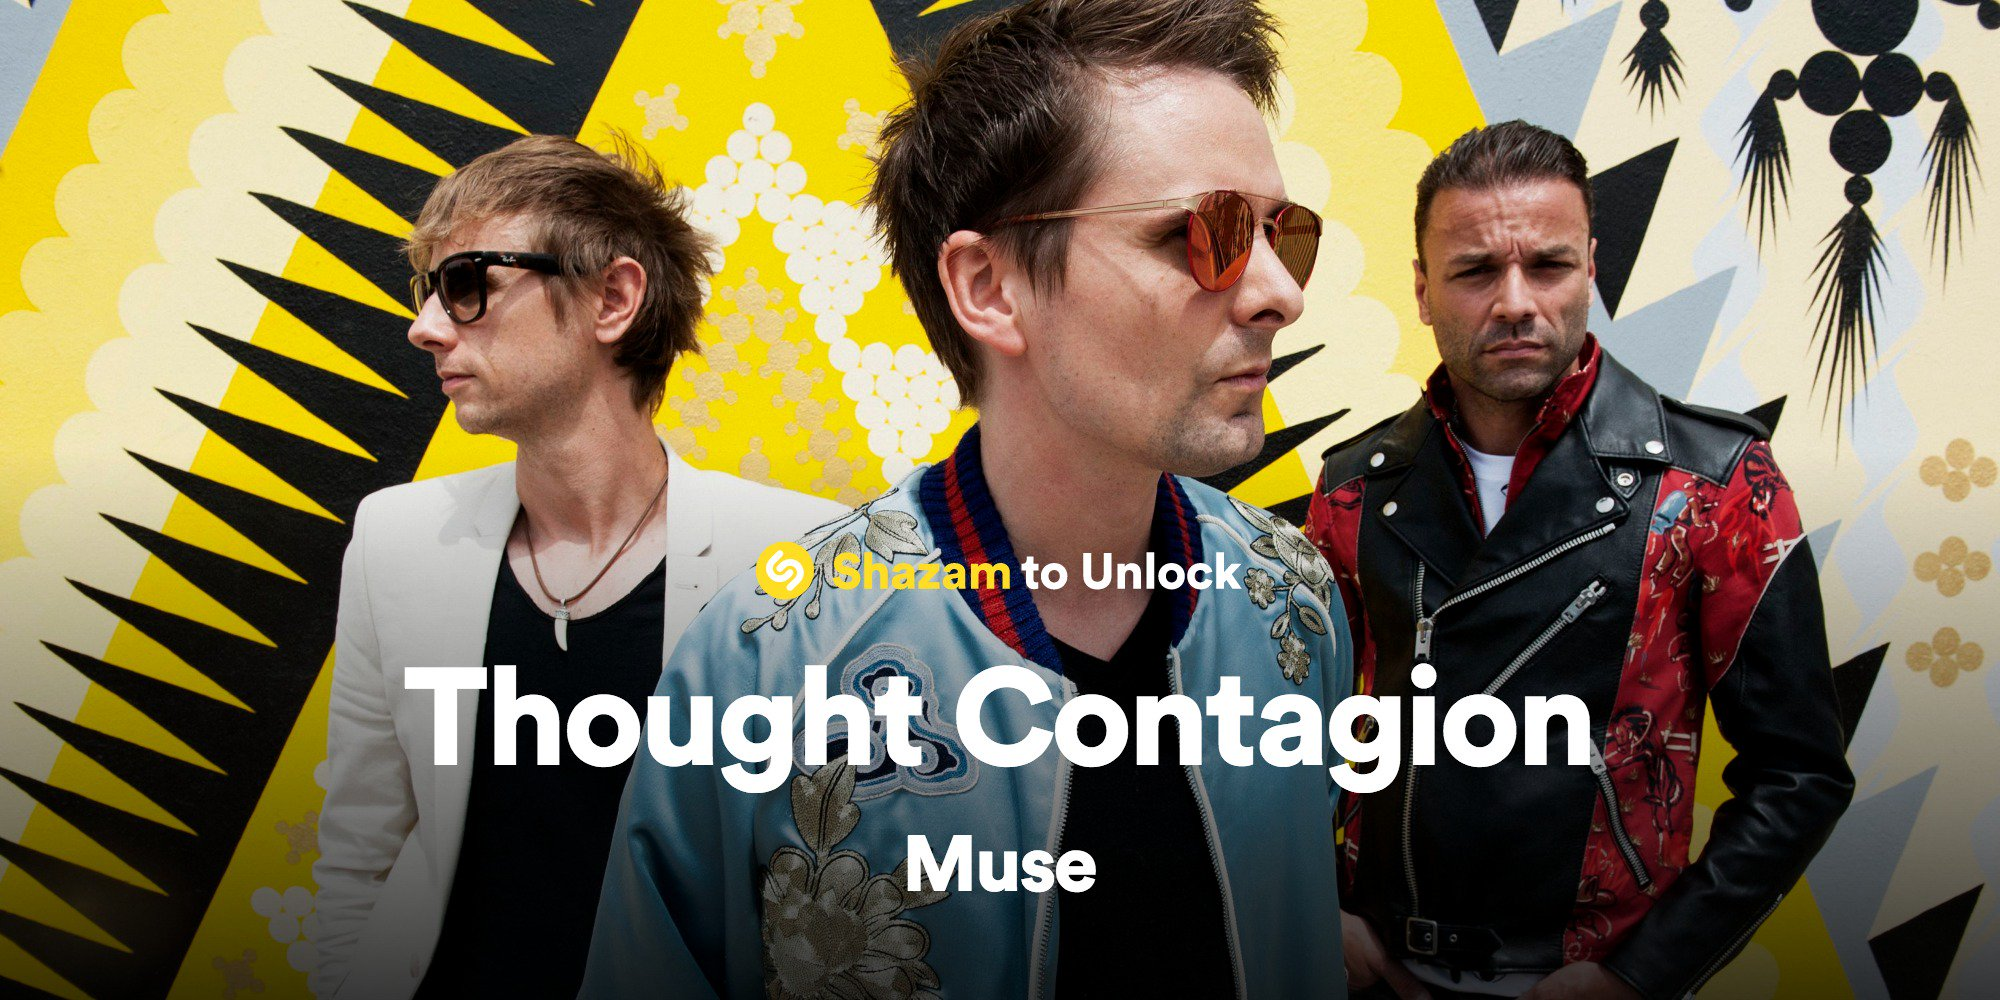 #Shazam #ThoughtContagion by @muse to unlock an exclusive video! ������ https://t.co/BsPqGym8Kr